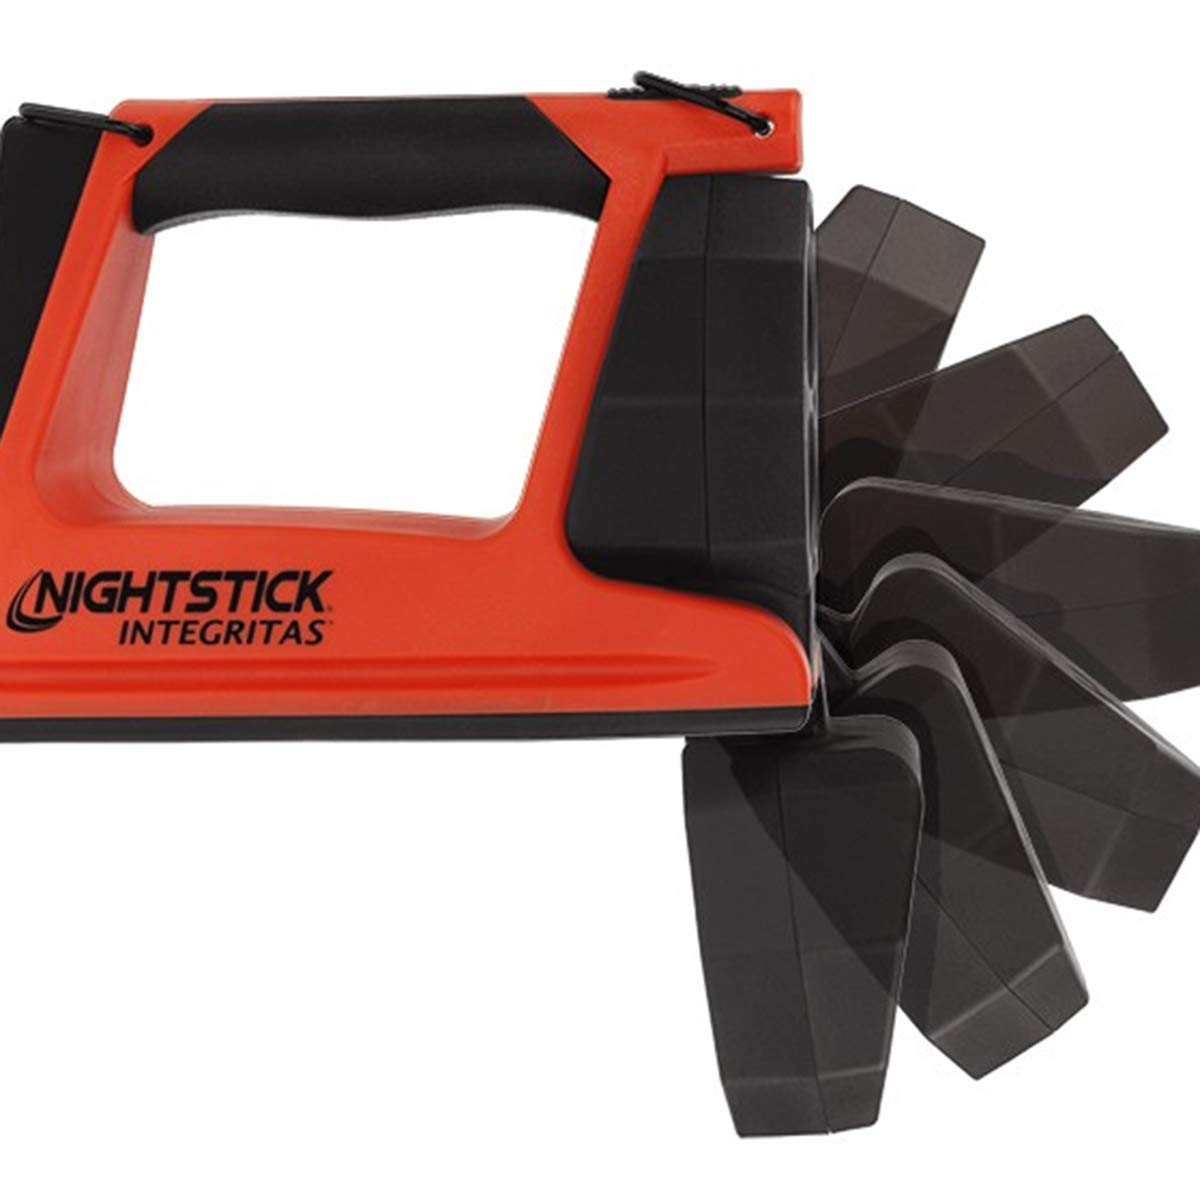 Nightstick INTEGRITAS Intrinsically Safe Rechargeable Lantern - INTEGRITAS Intrinsically Safe Rechargeable Lantern